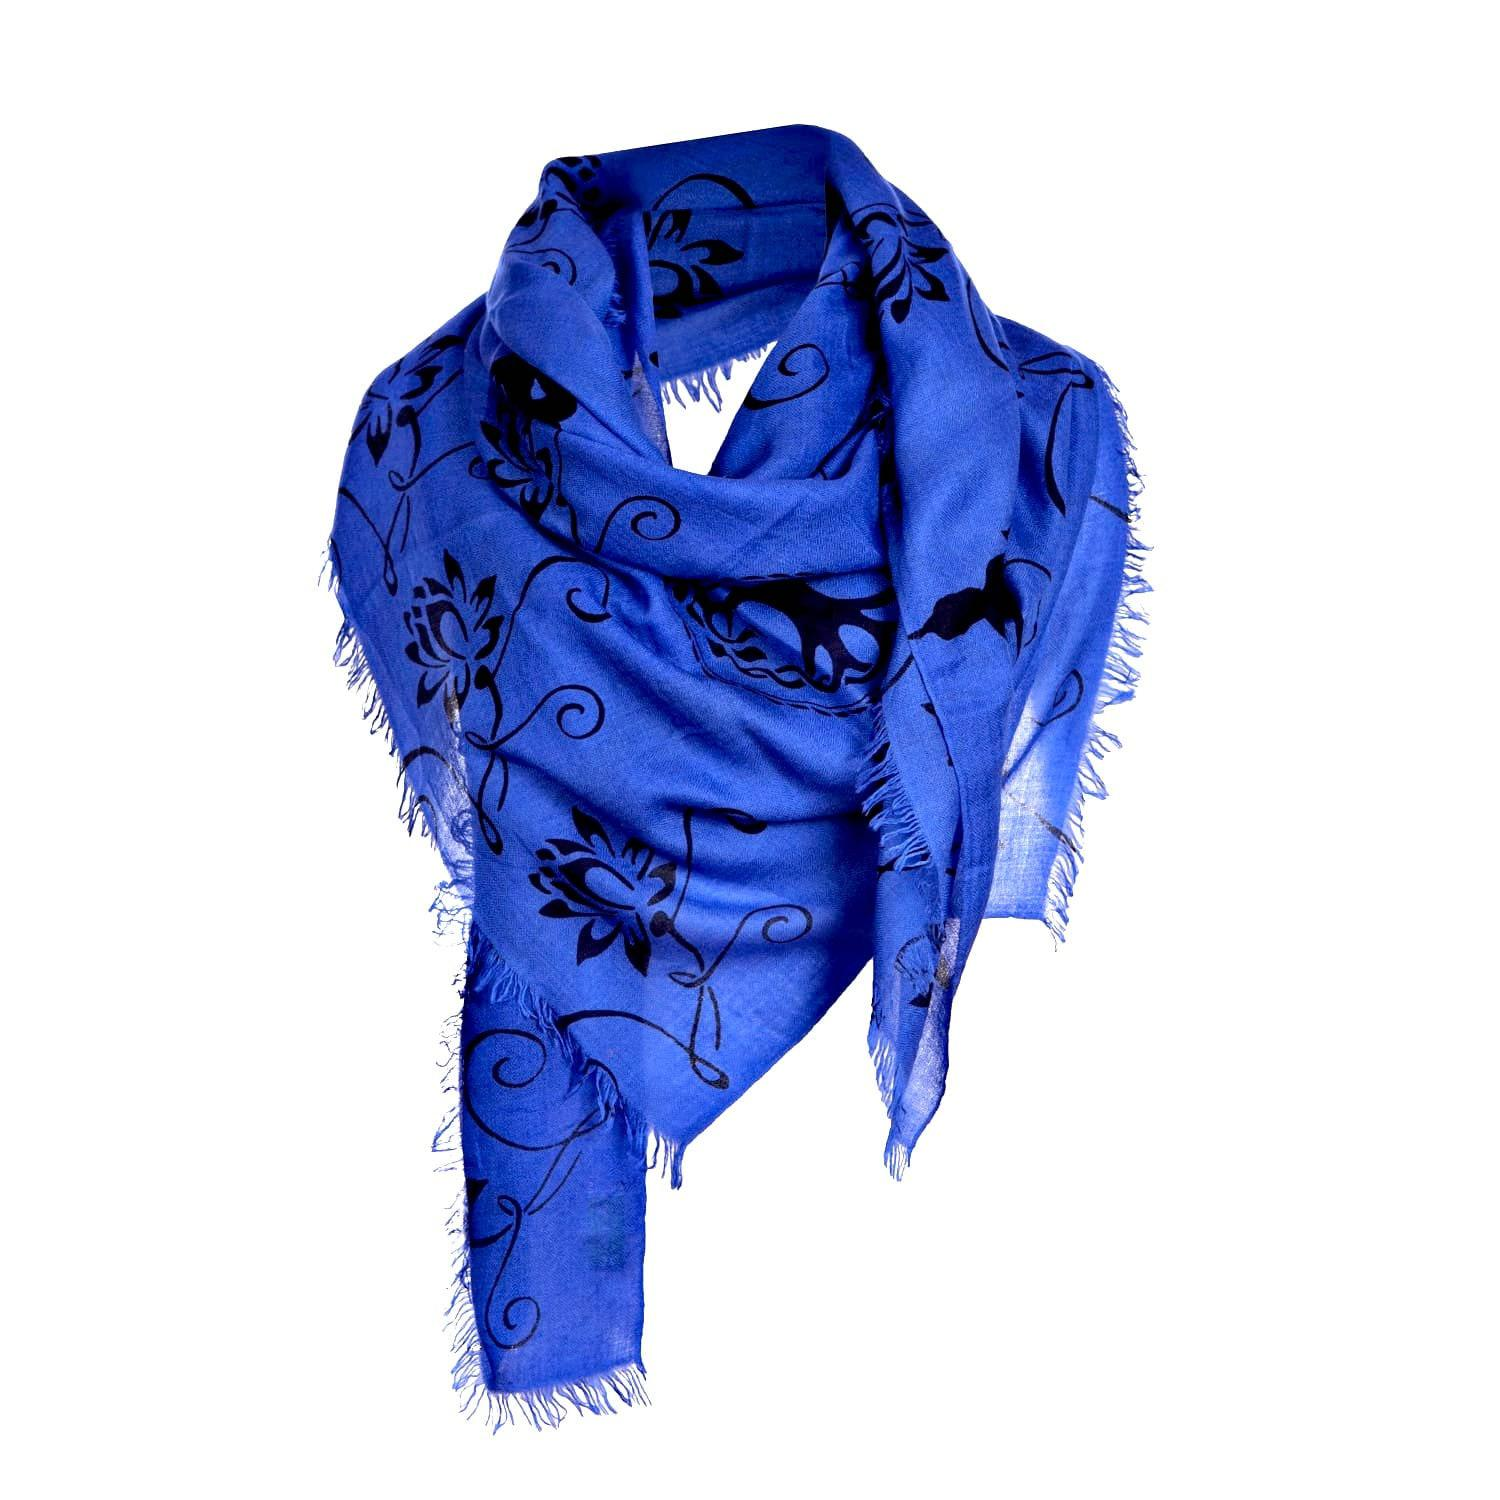 Modal Scarf - CLOUD BLUE PATTERN SCARF by VIDA VIDA